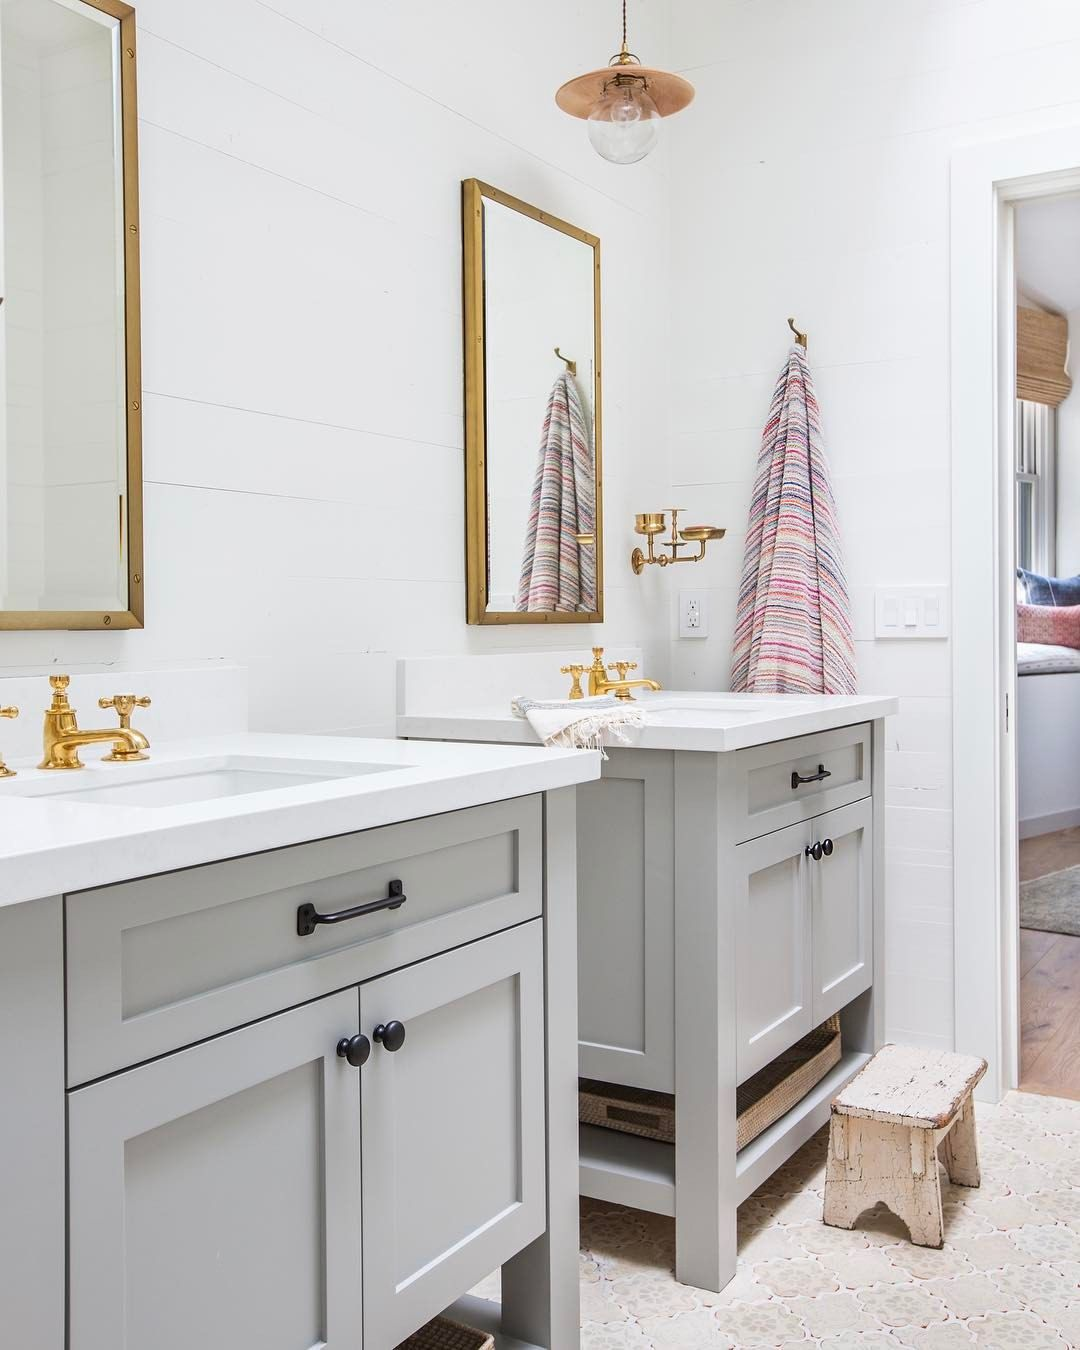 4 731 Likes 63 Comments Amber Lewis Amberinteriors On Instagram Such A Cute Little Jack And Jil Bathroom Kids Jack And Jill Bathroom Bathrooms Remodel